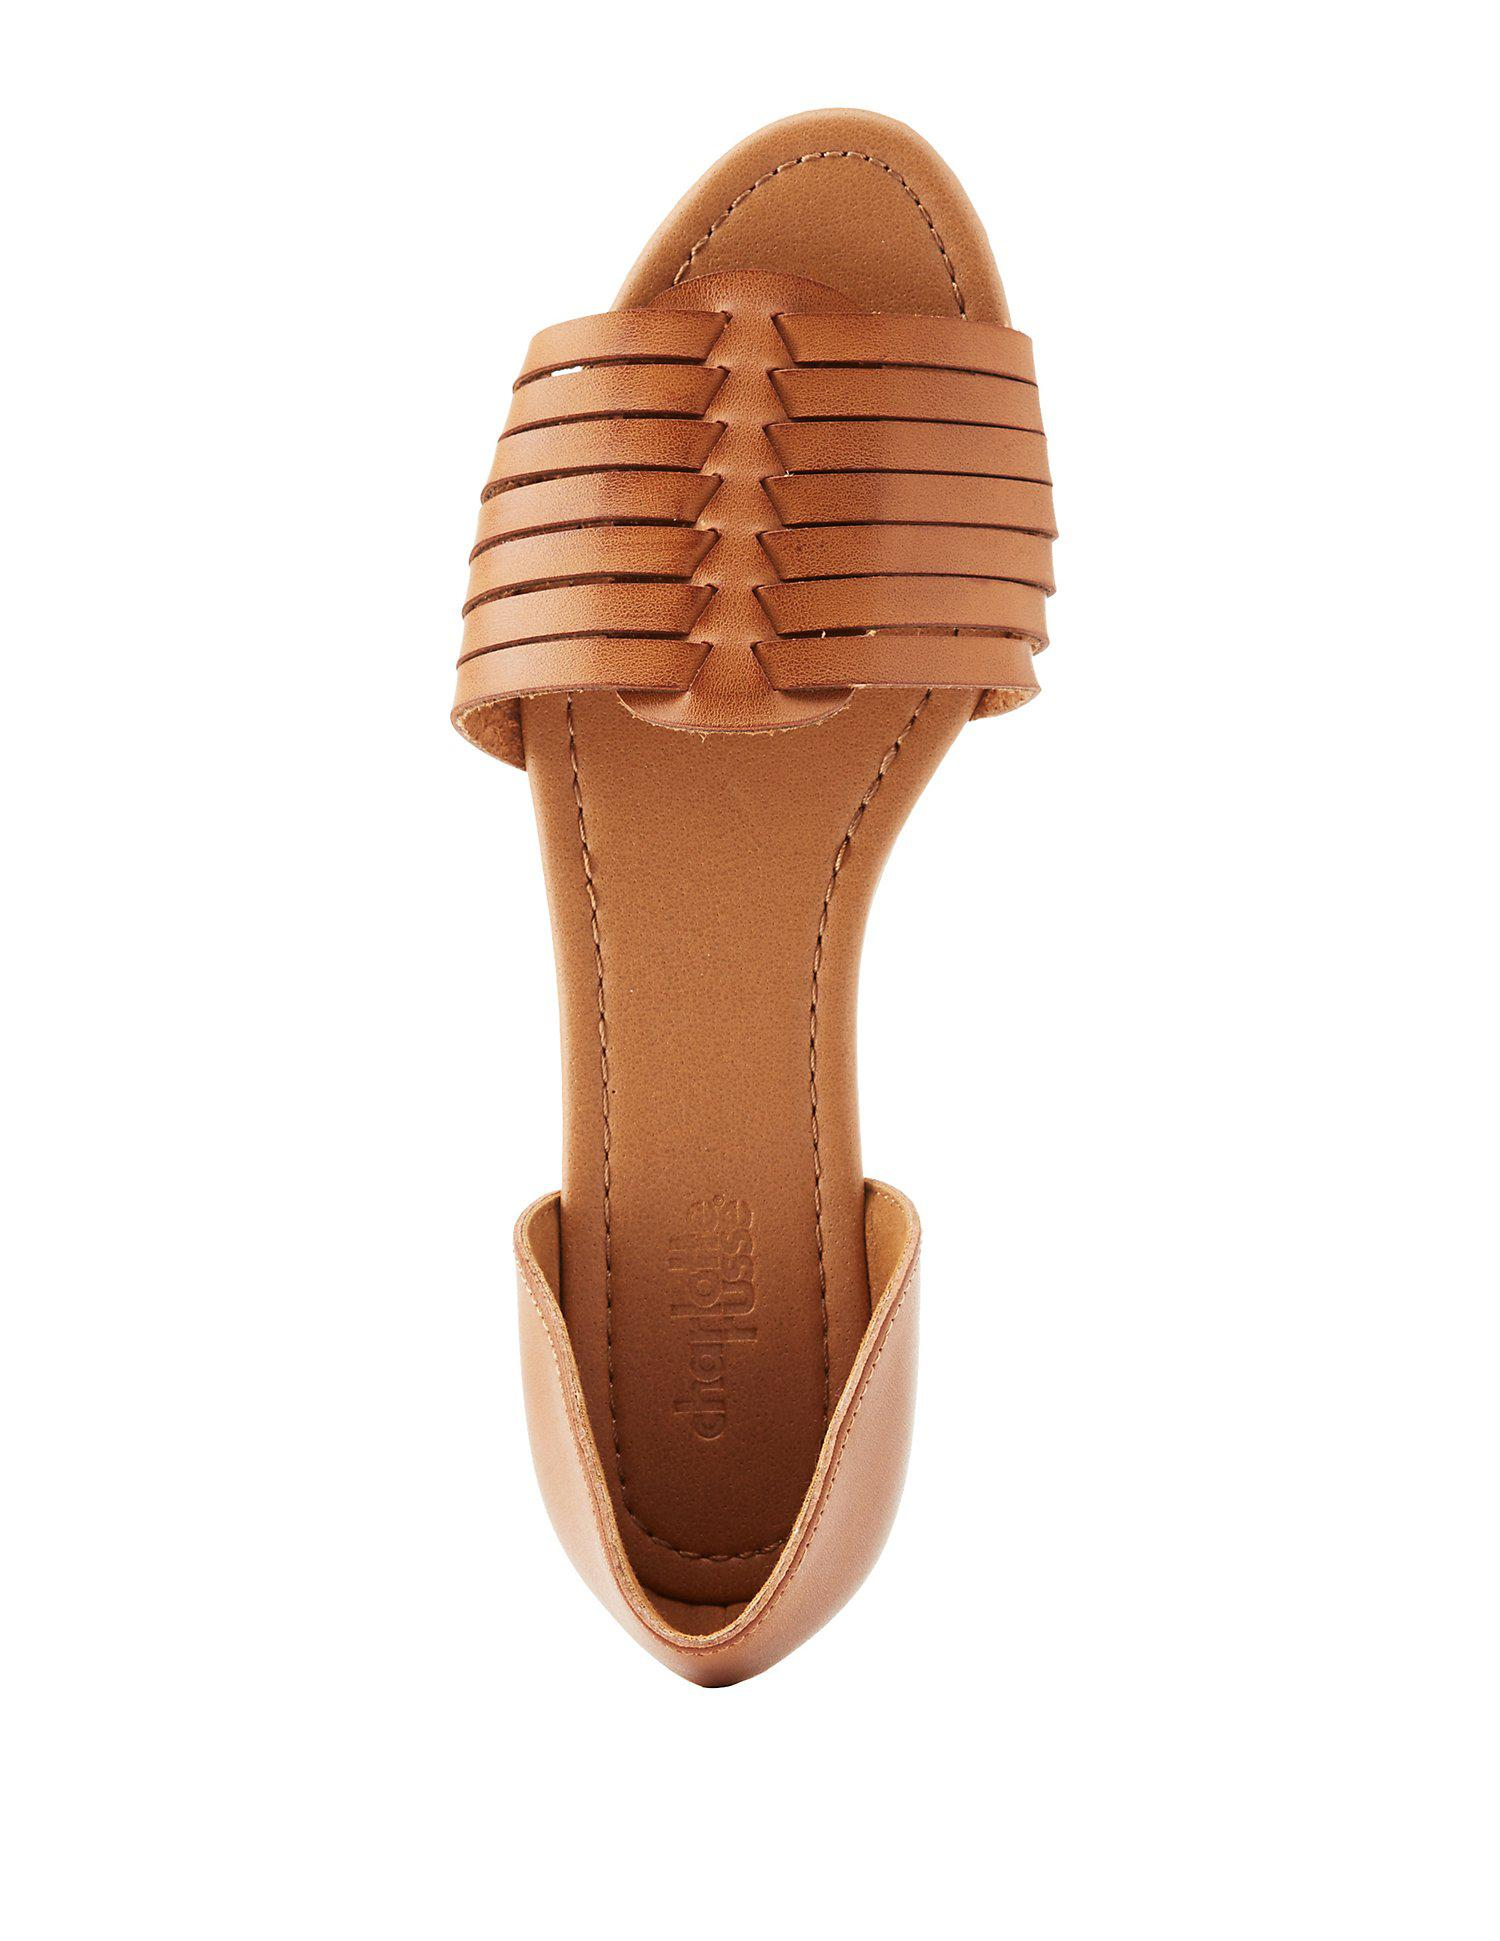 c1760f9ad55a Lyst - Charlotte Russe Two-piece Huarache Sandals in Brown